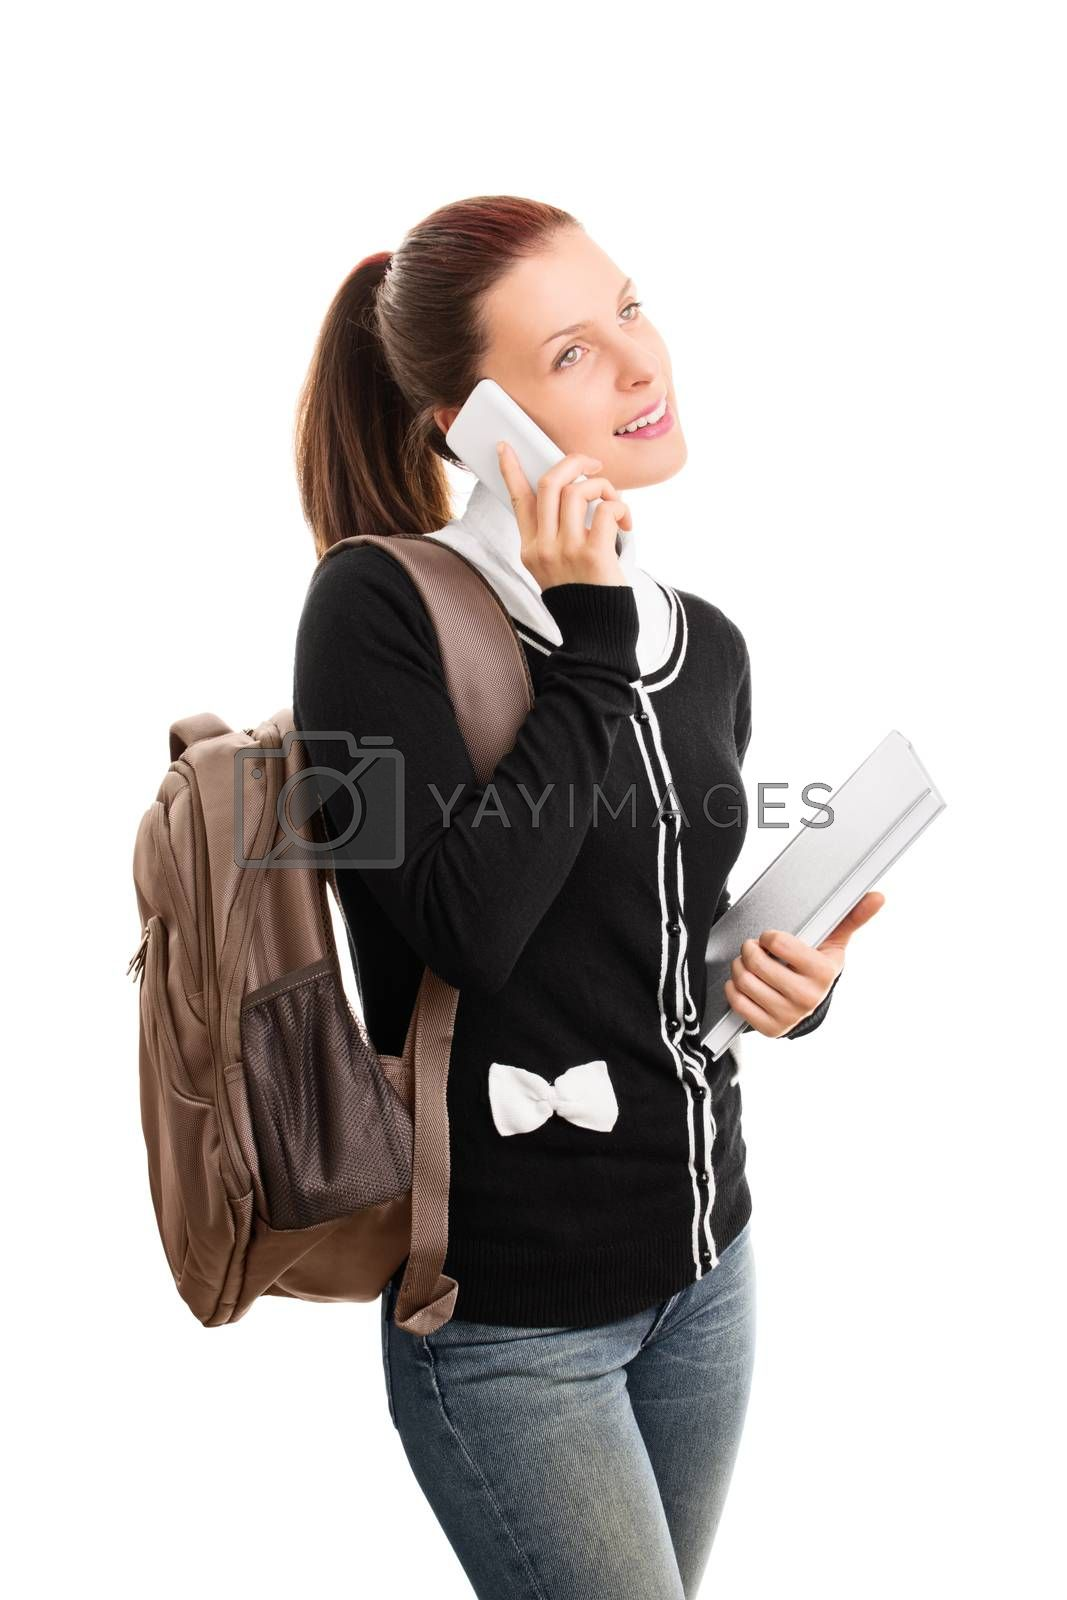 Beautiful smiling young student girl with a backpack, holding books and talking on a phone, isolated on white background.